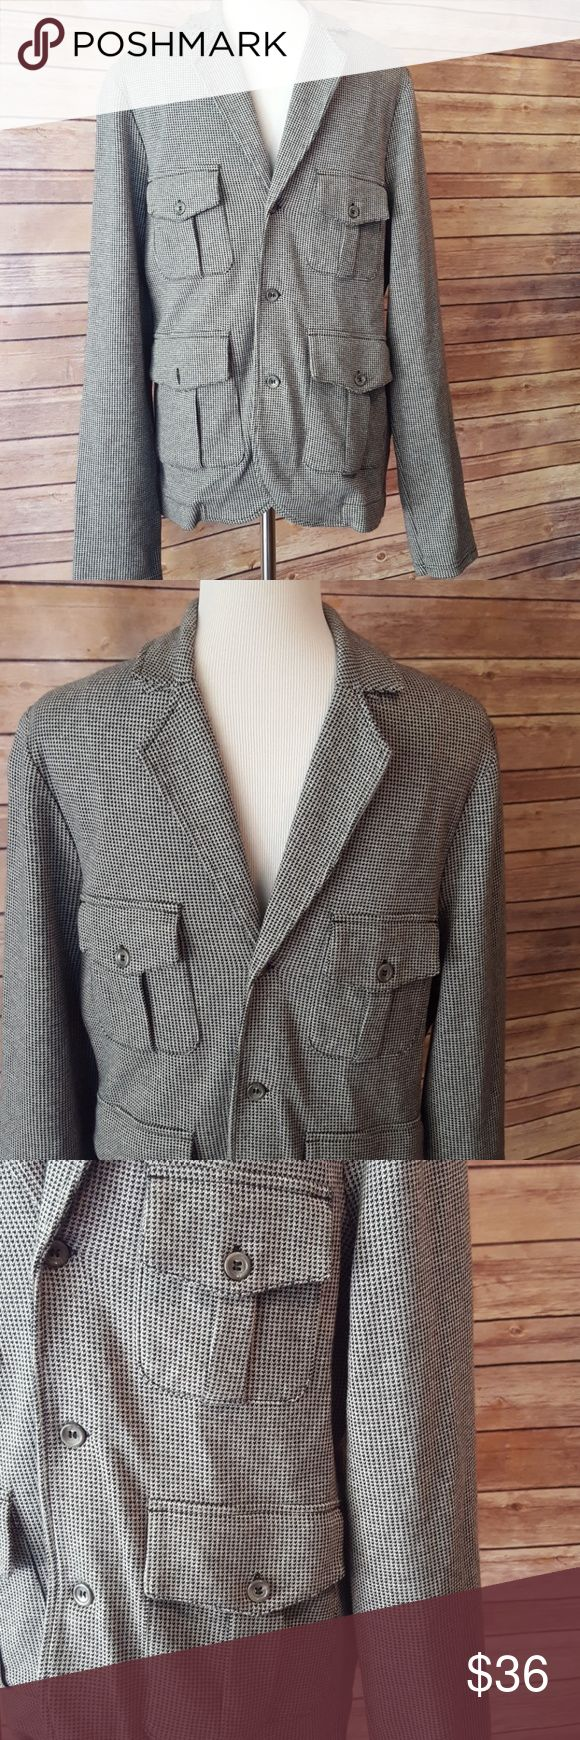 TOPMAN Very Stylish & Comfy Shirt Jacket Very Stylish & Comfy TOPMAN Shirt Jacket, size s. Fits chest measurement 36-38. Cotton/viscose blend, like a very heavy t shirt material. In excellent condition. Topman Jackets & Coats Lightweight & Shirt Jackets